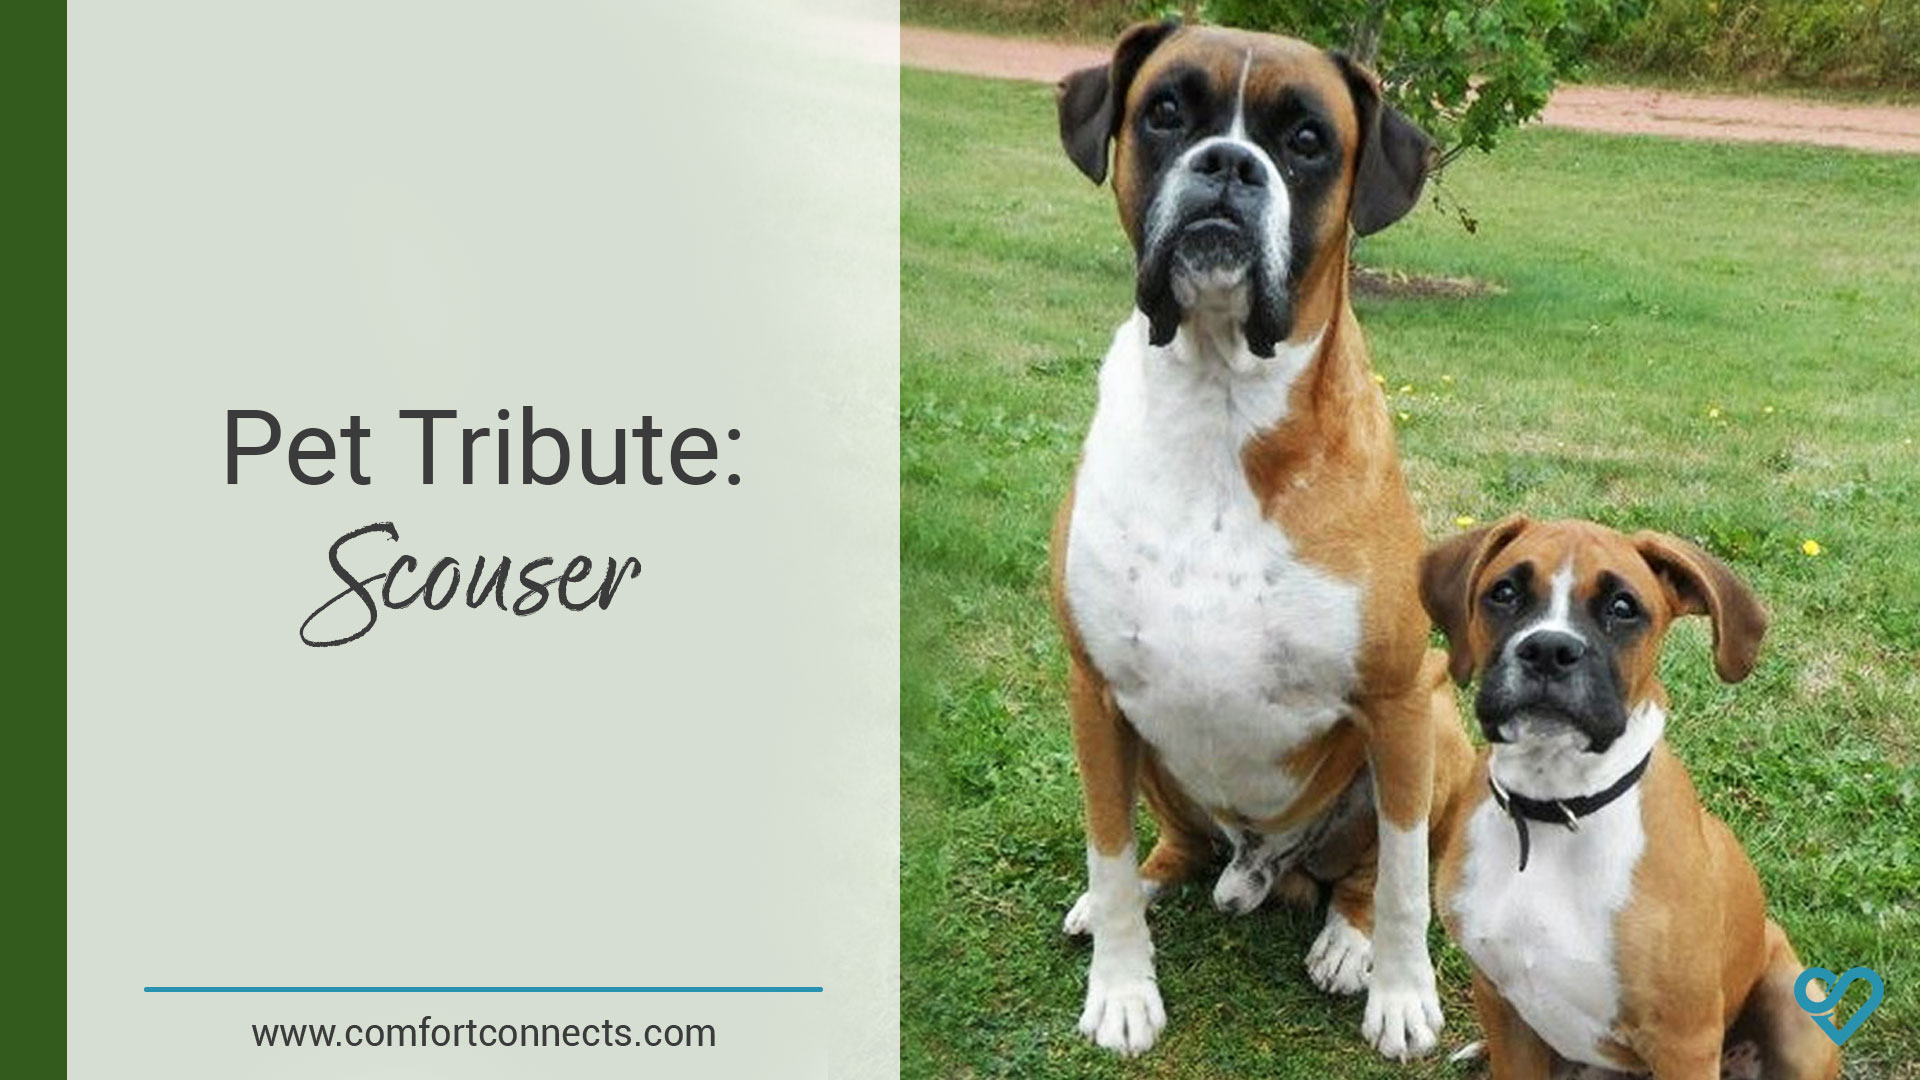 Pet Tribute: Scouser